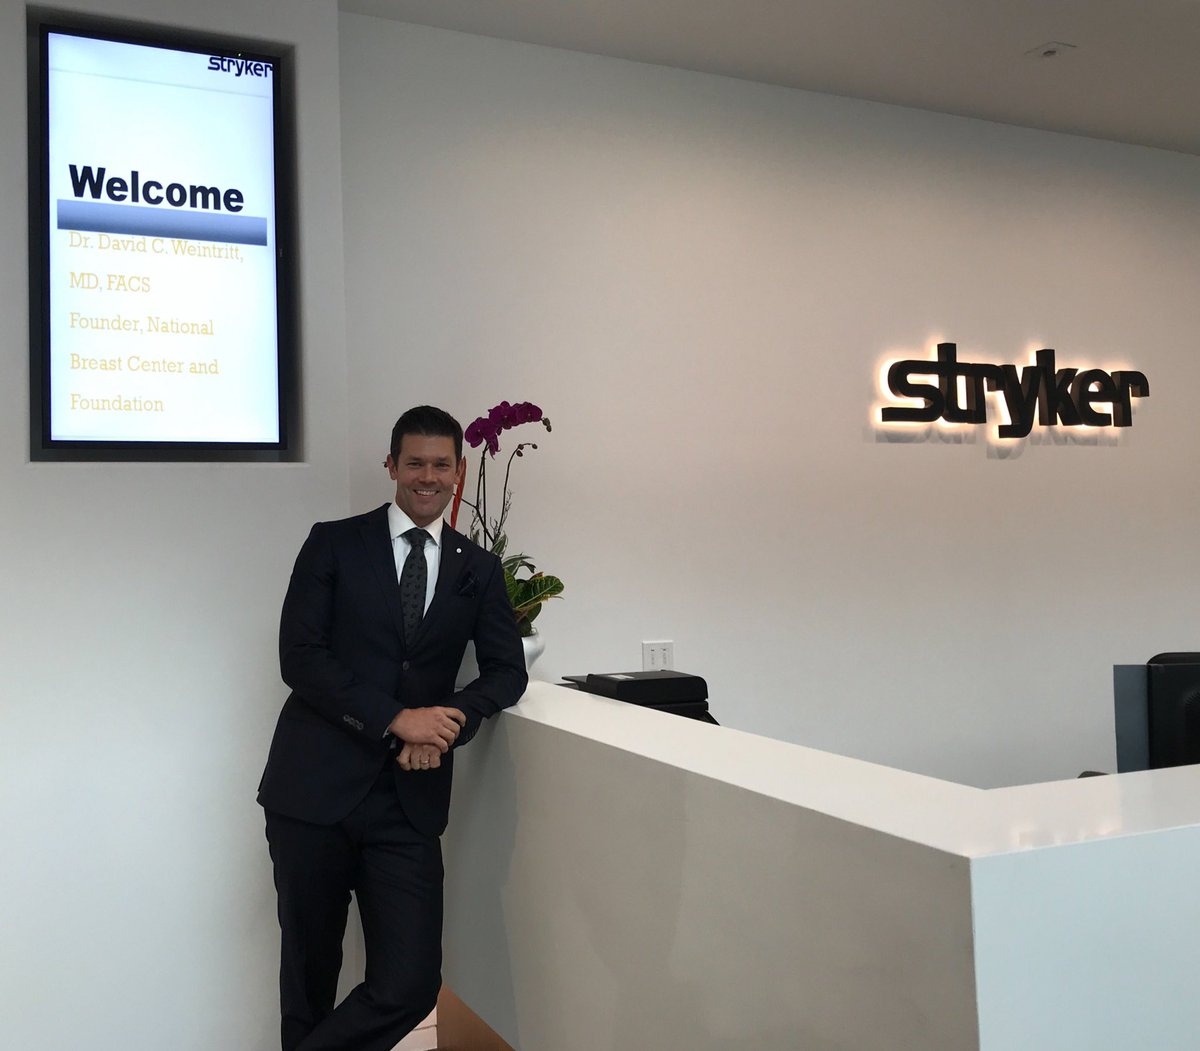 Invited to collaborate with amazing team at #Stryker.  Solutions for surgeons and patients and now taking aim against #breastcancer.  Inspired by talented dedicated and caring team. #spyphi  #spyelite #isuite tools for better outcomes!<br>http://pic.twitter.com/X95ugPPOMD